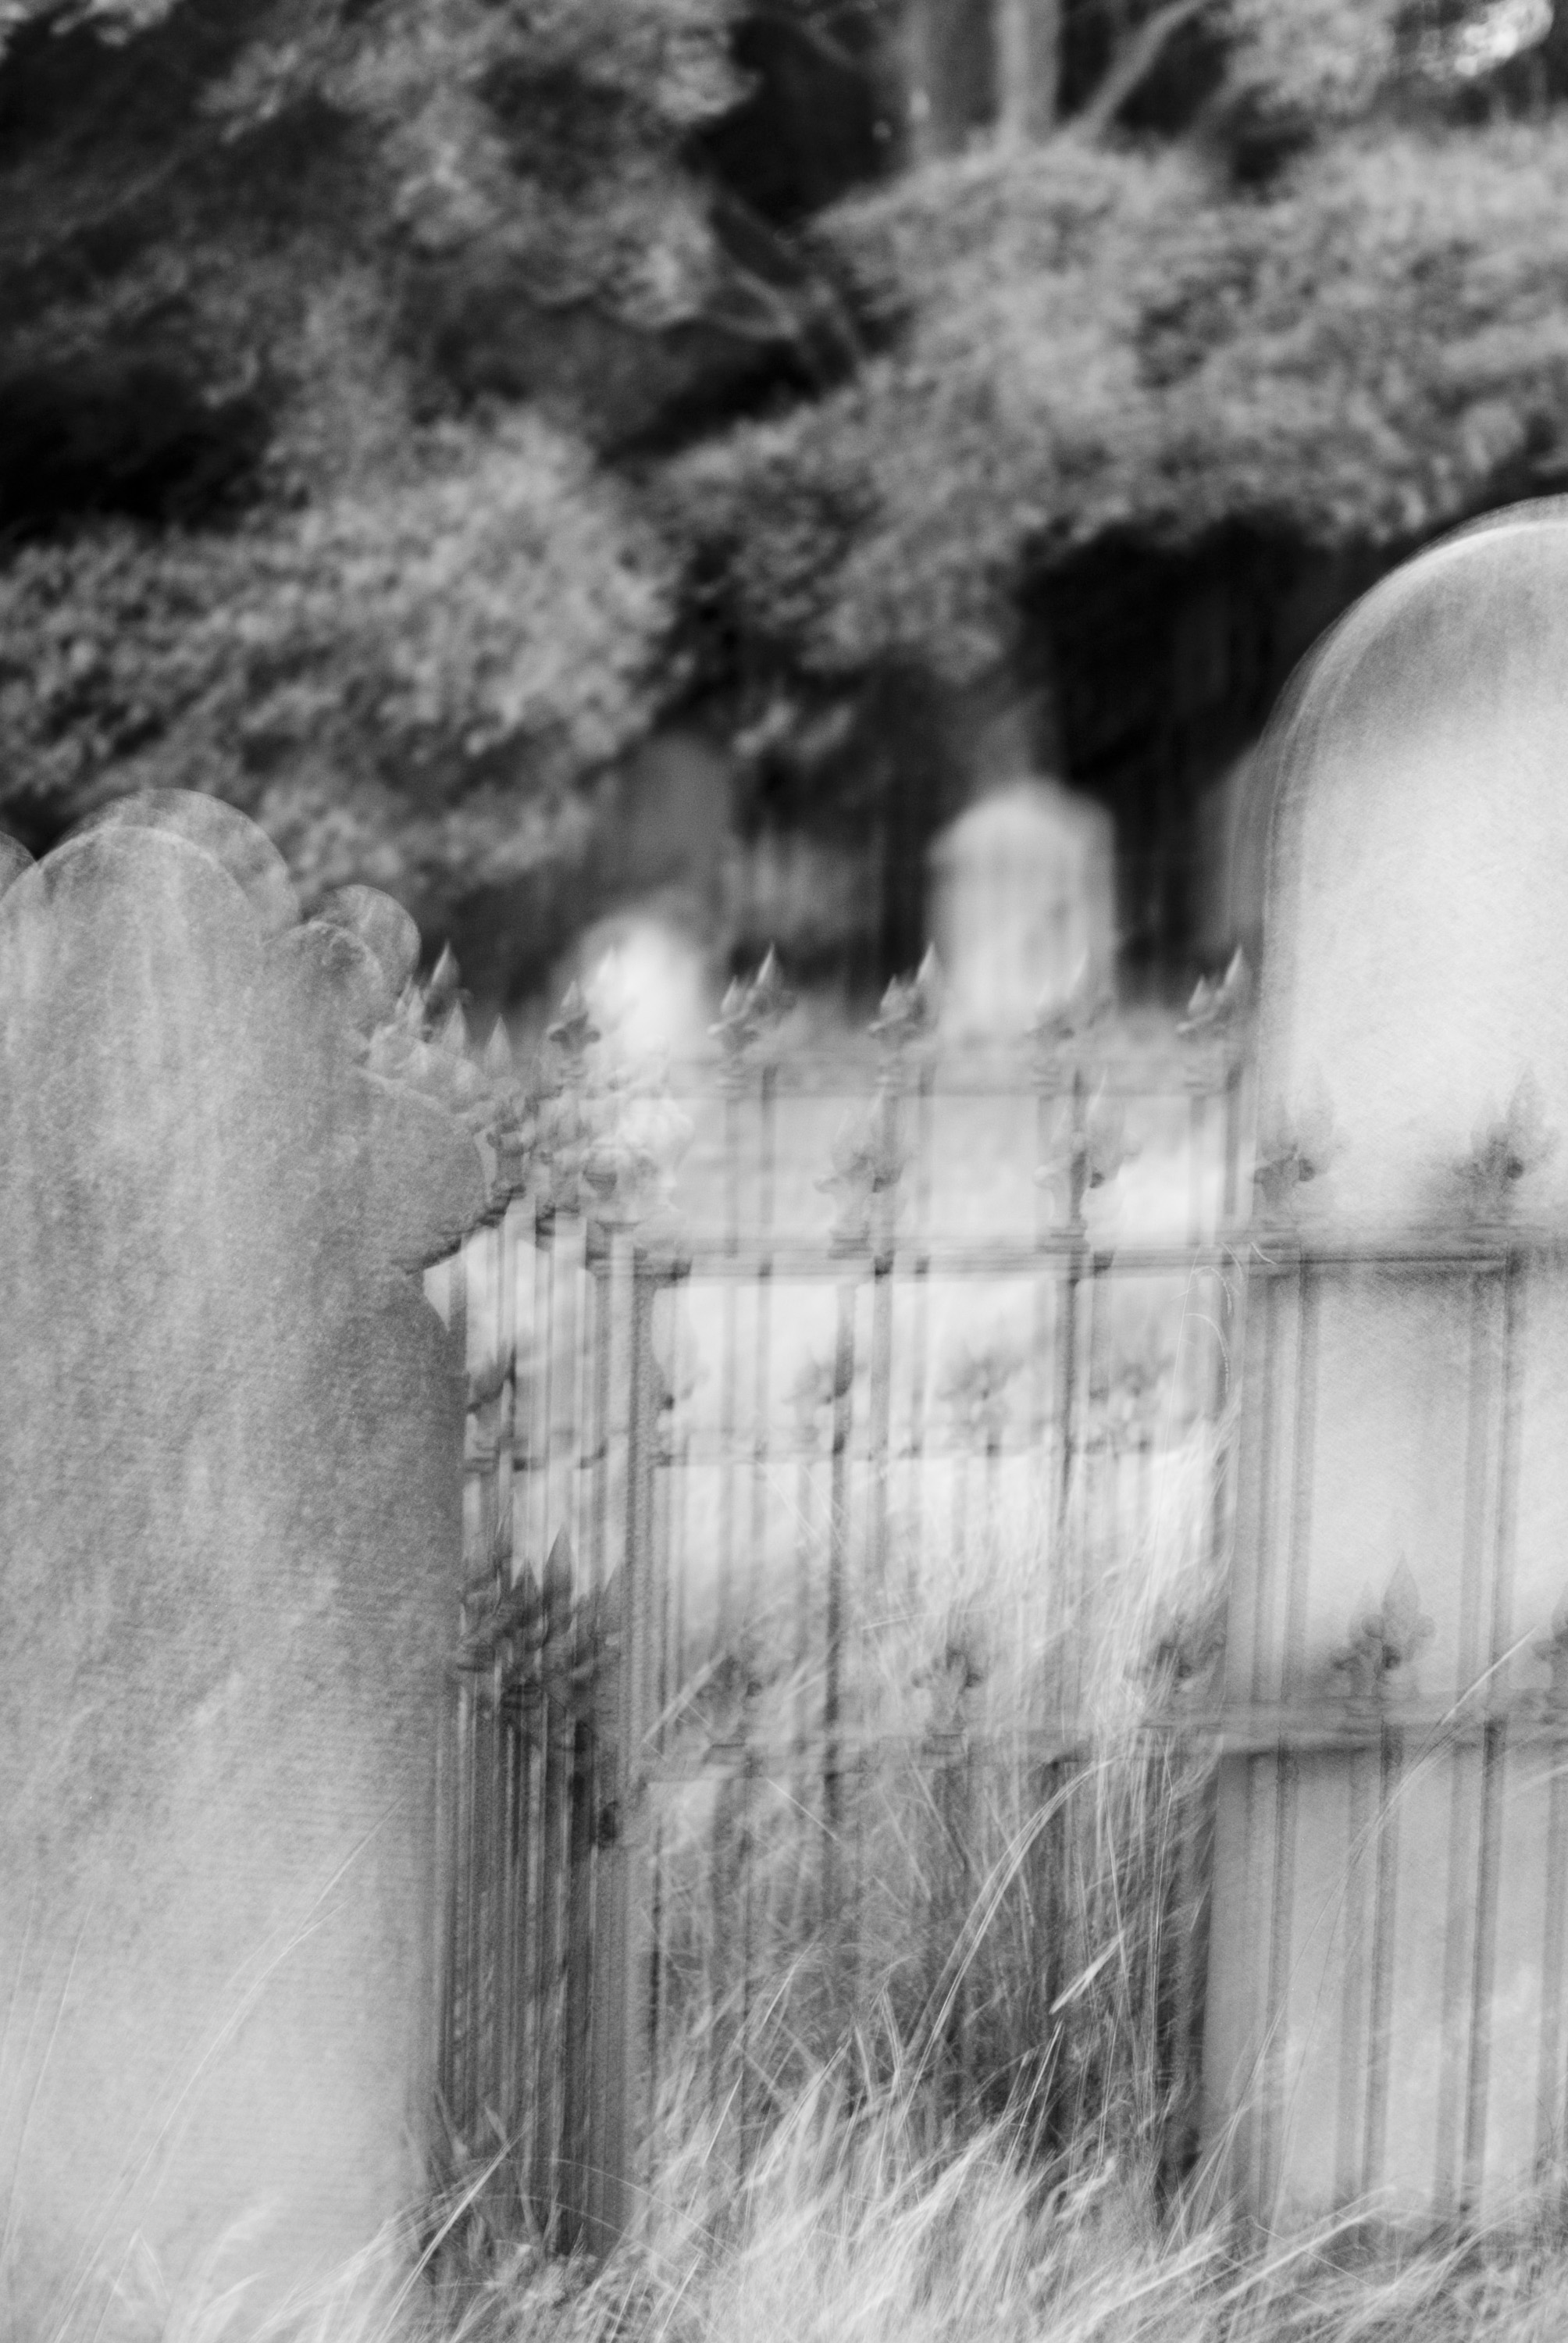 blurred image of headstones